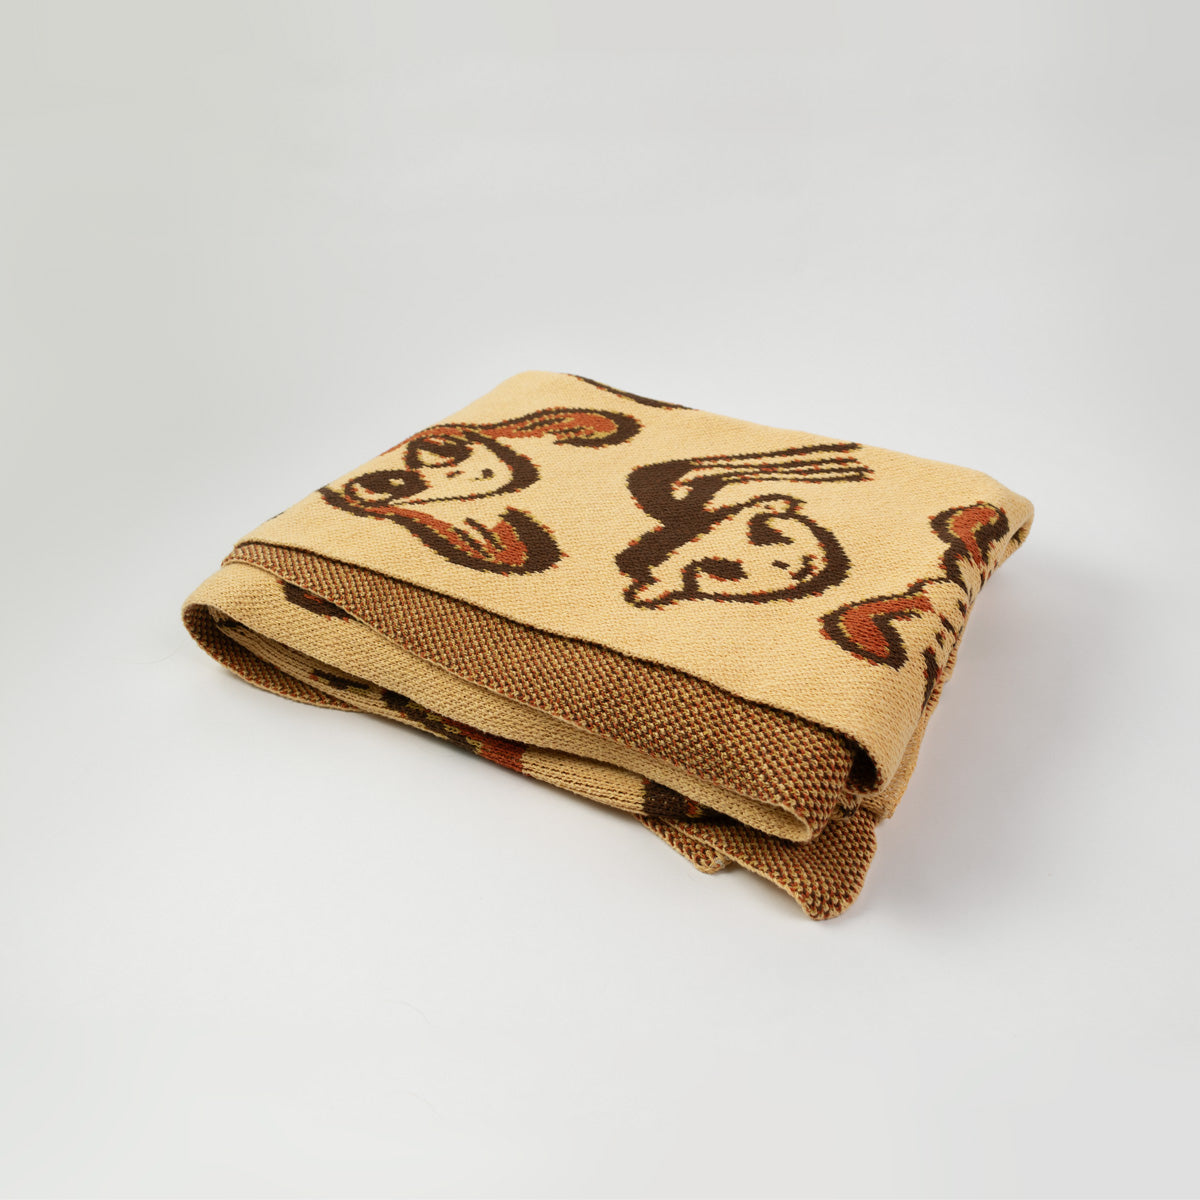 Funny Faces Blanket